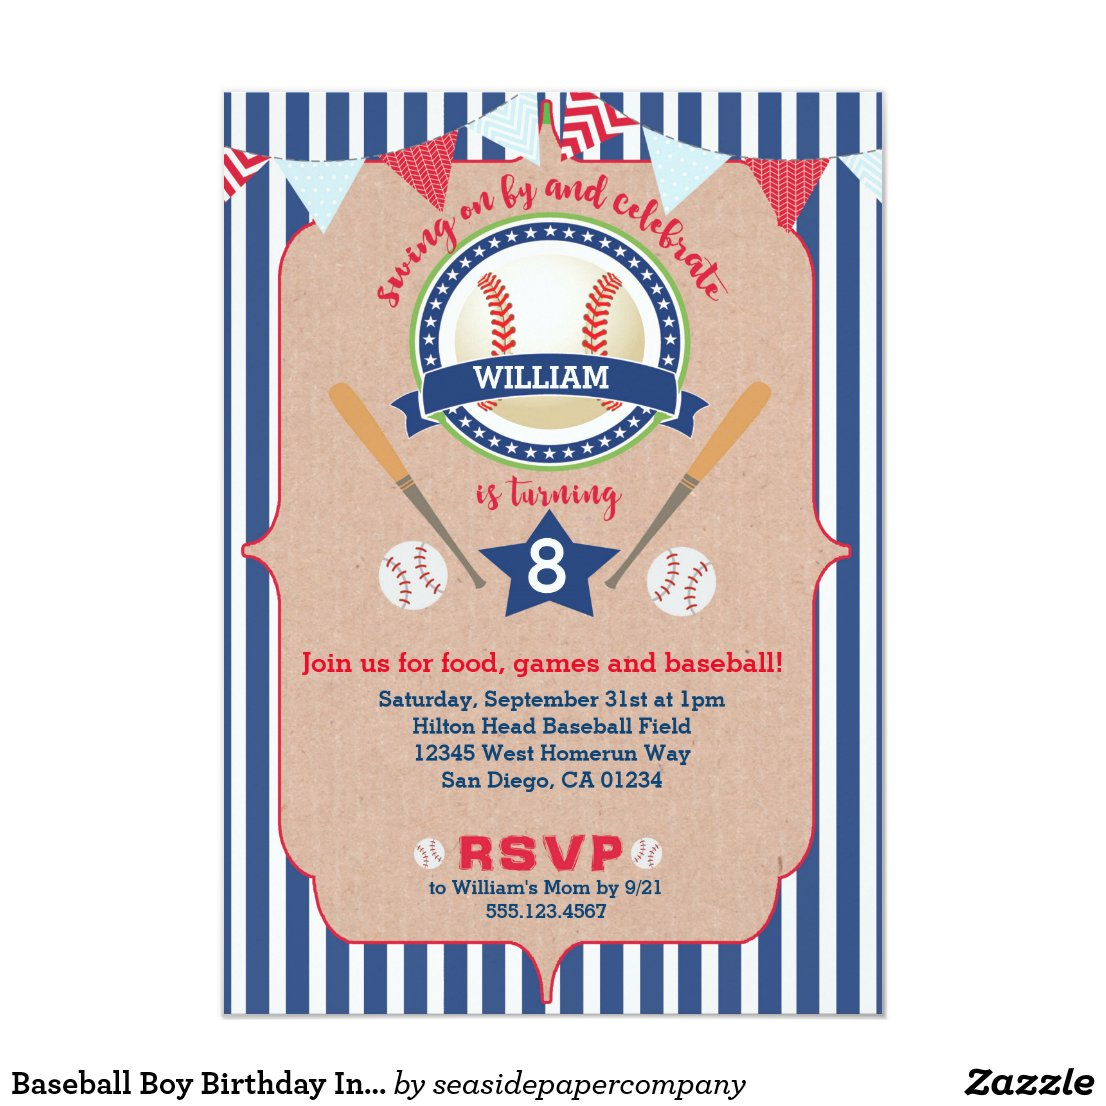 Baseball Boy Birthday Invitation Invite Navy & Red